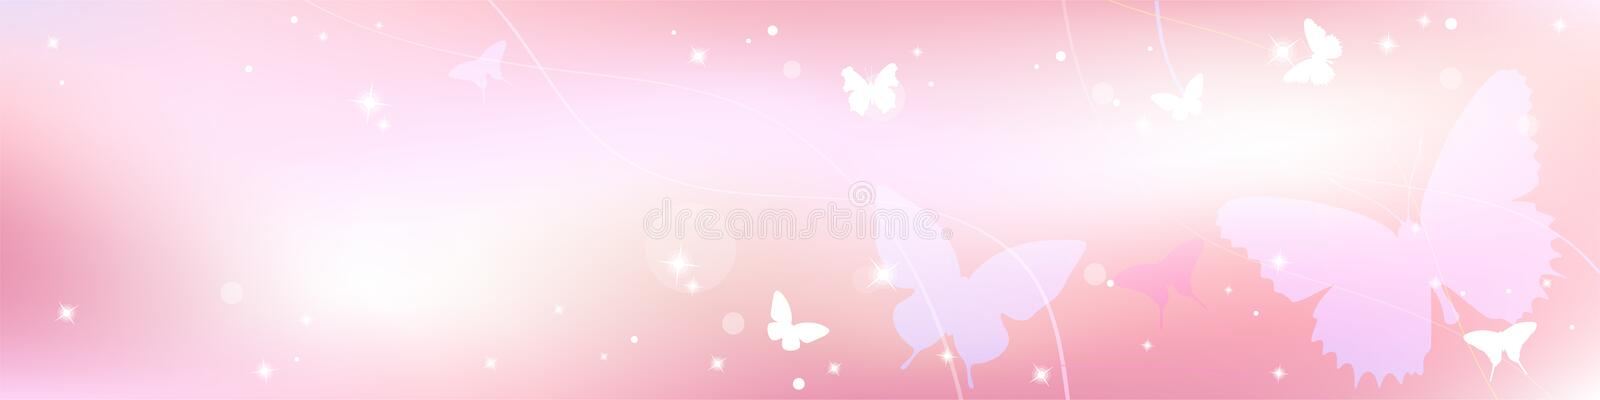 Abstract spring summer background in light pink pastel color, sweet love theme with butterfly vector illustration